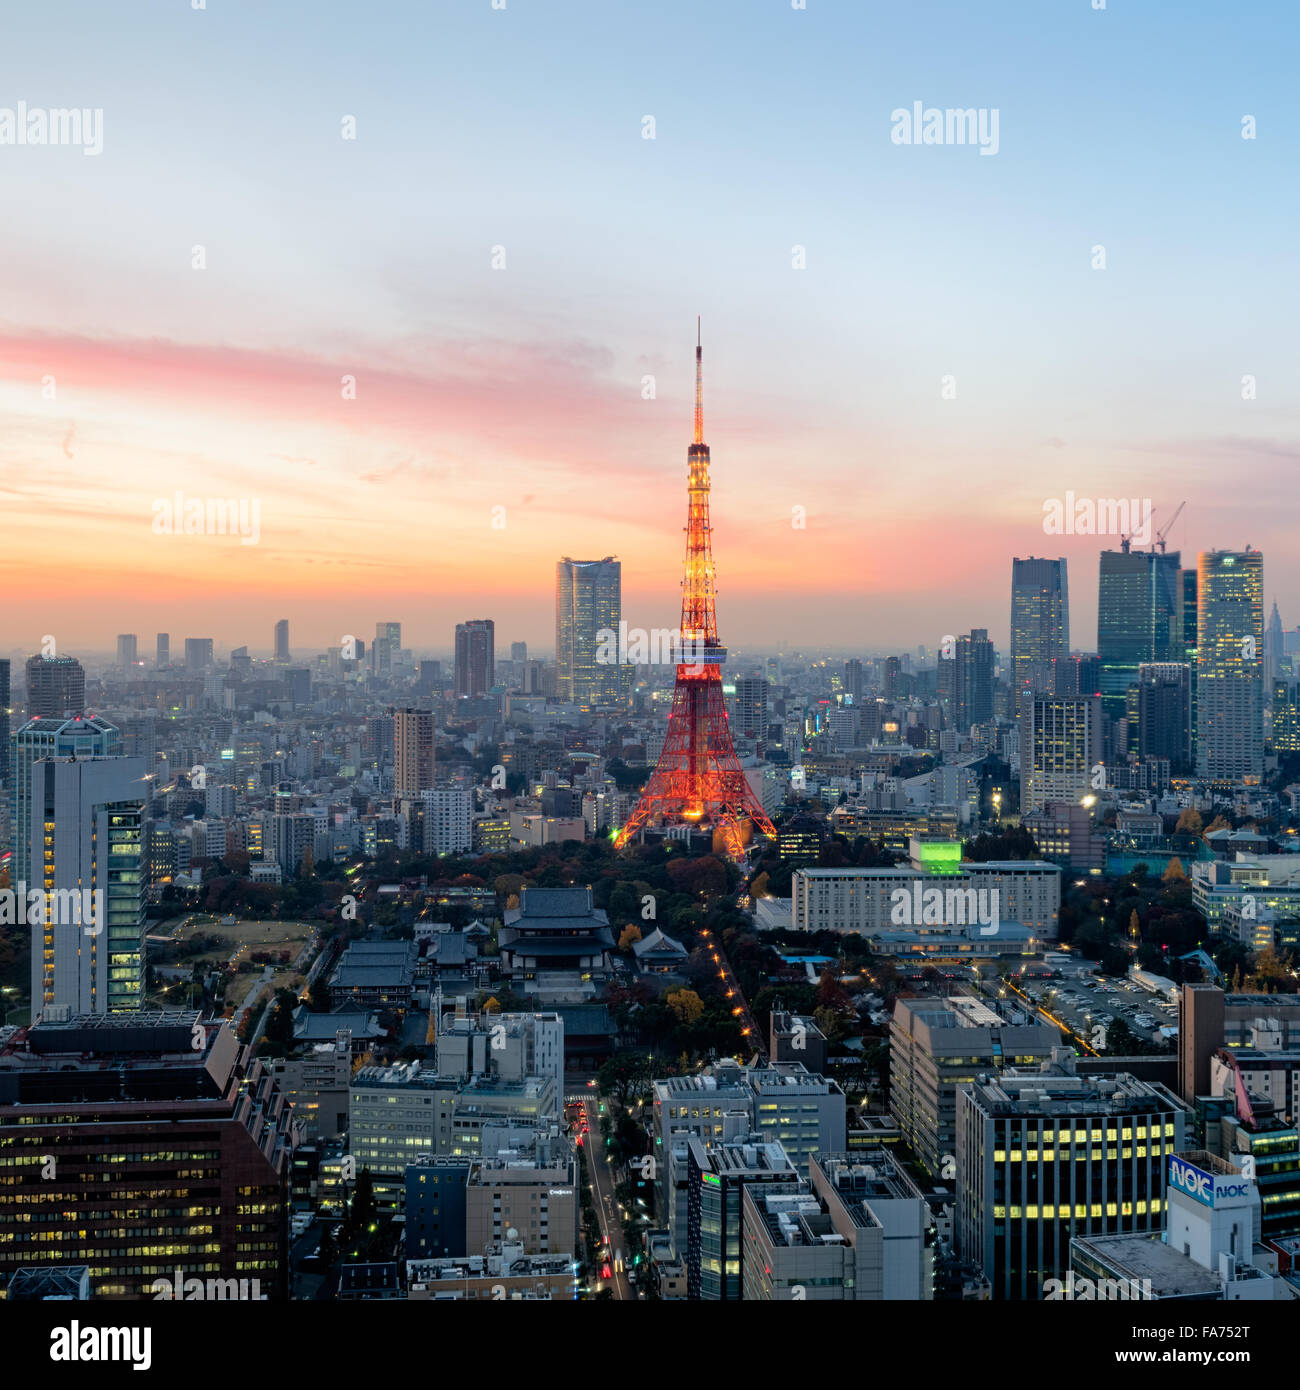 Tokyo, Japan - Dec 12, 2015: Sunset over Tokyo. Tokyo  is both the capital and largest city of Japan. The Greater - Stock Image